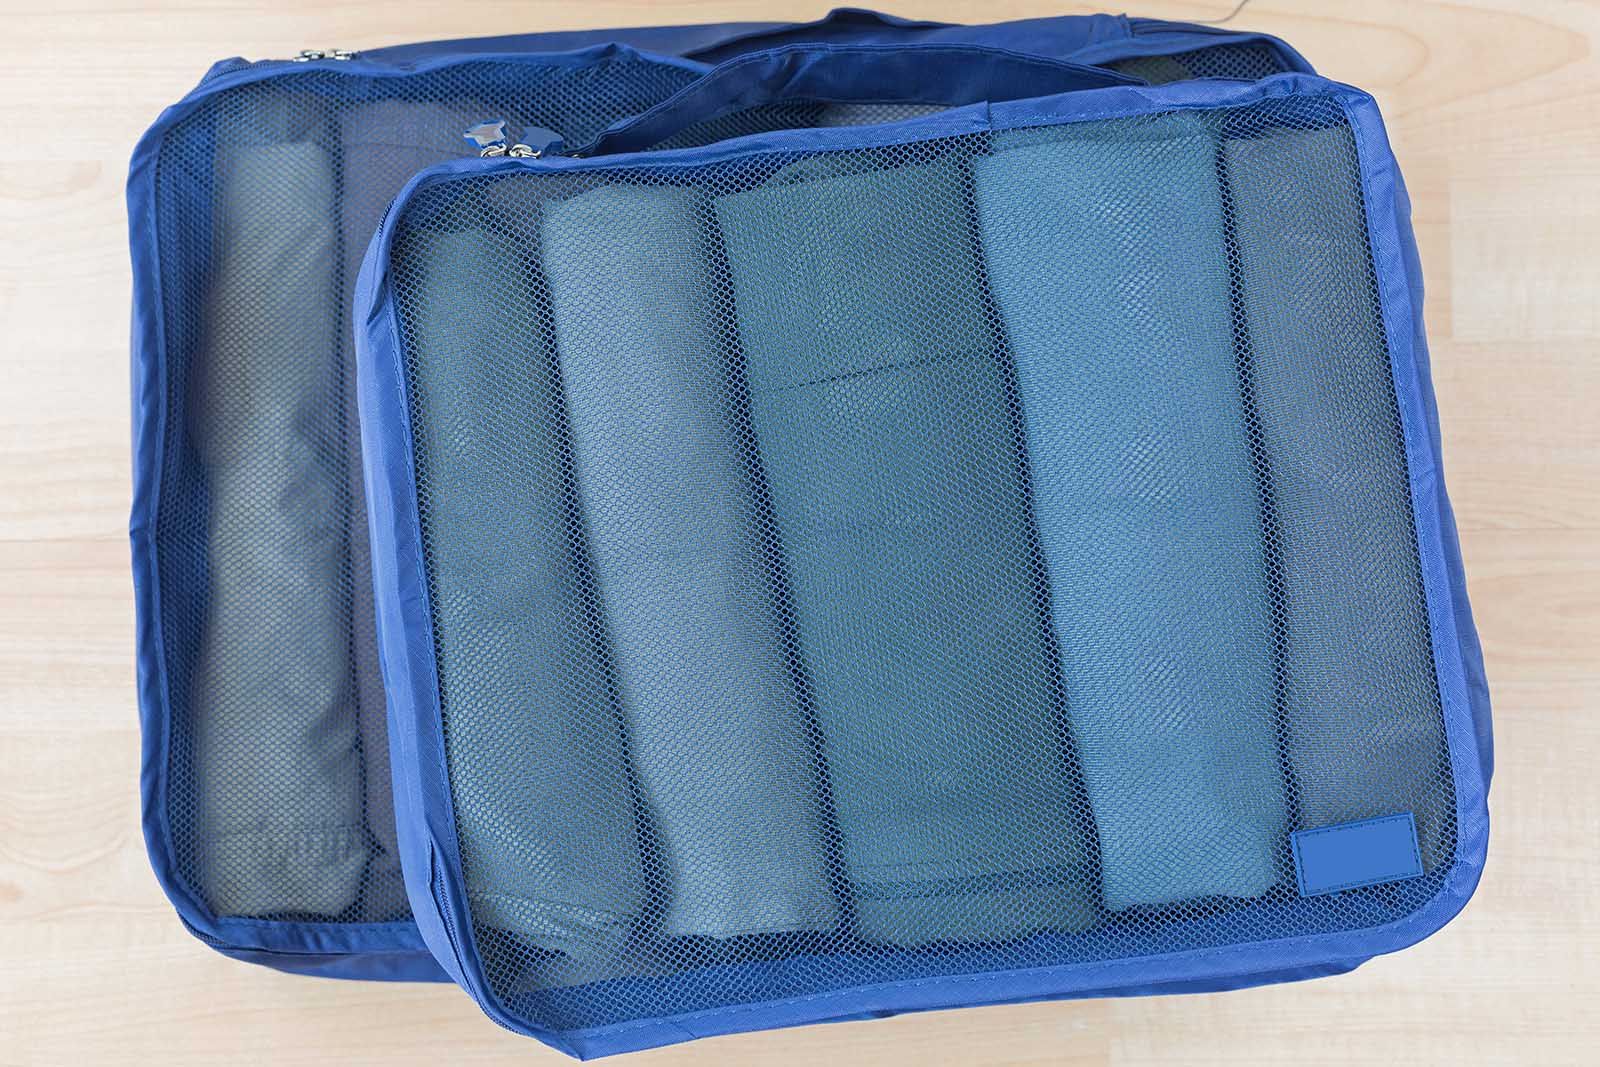 Clothing folded neatly in a packing cube